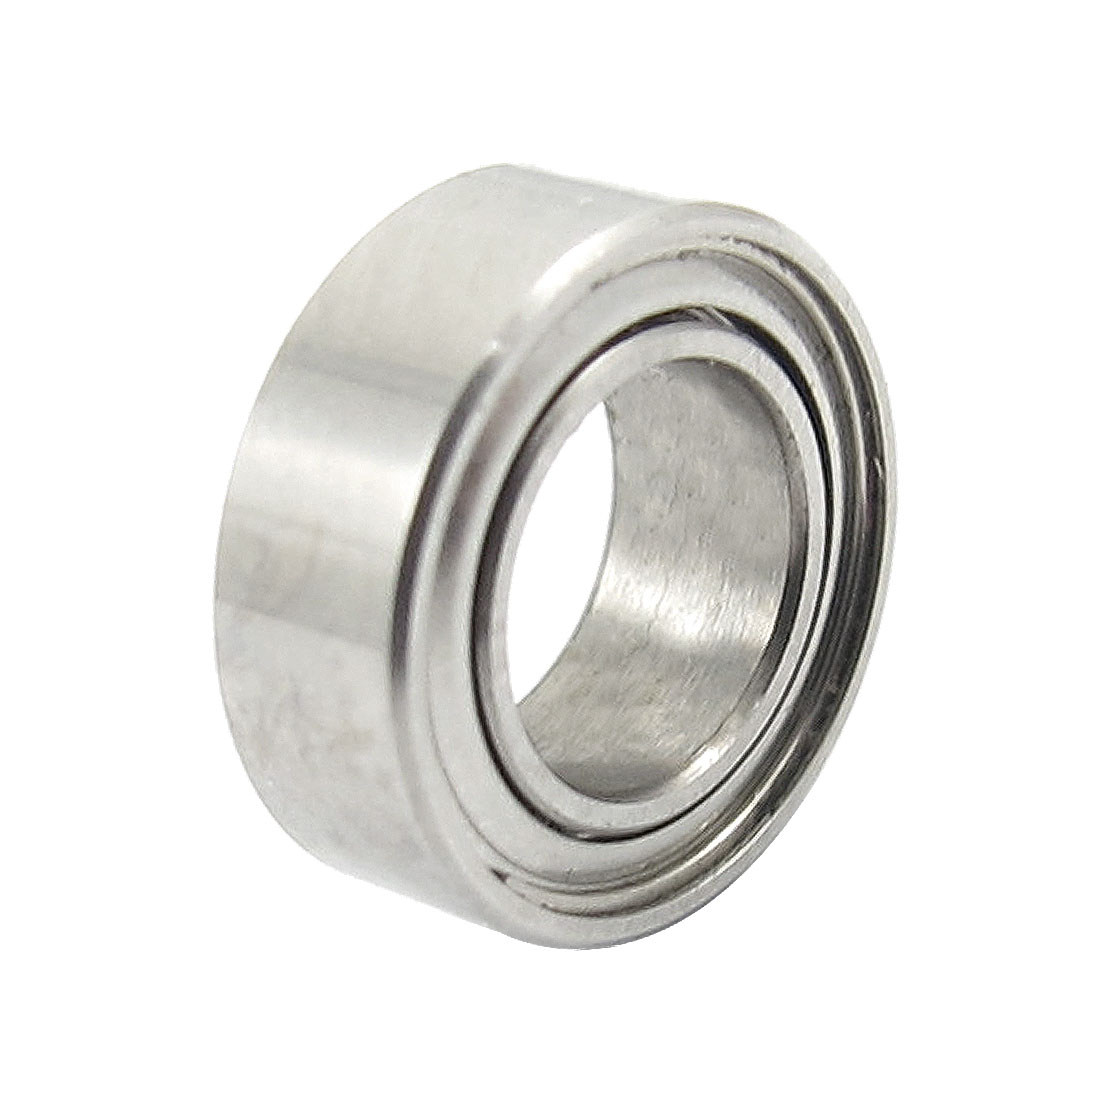 4mm-x-7mm-x-2-5mm-Shields-Radial-Miniature-Deep-Groove-Ball-Bearing